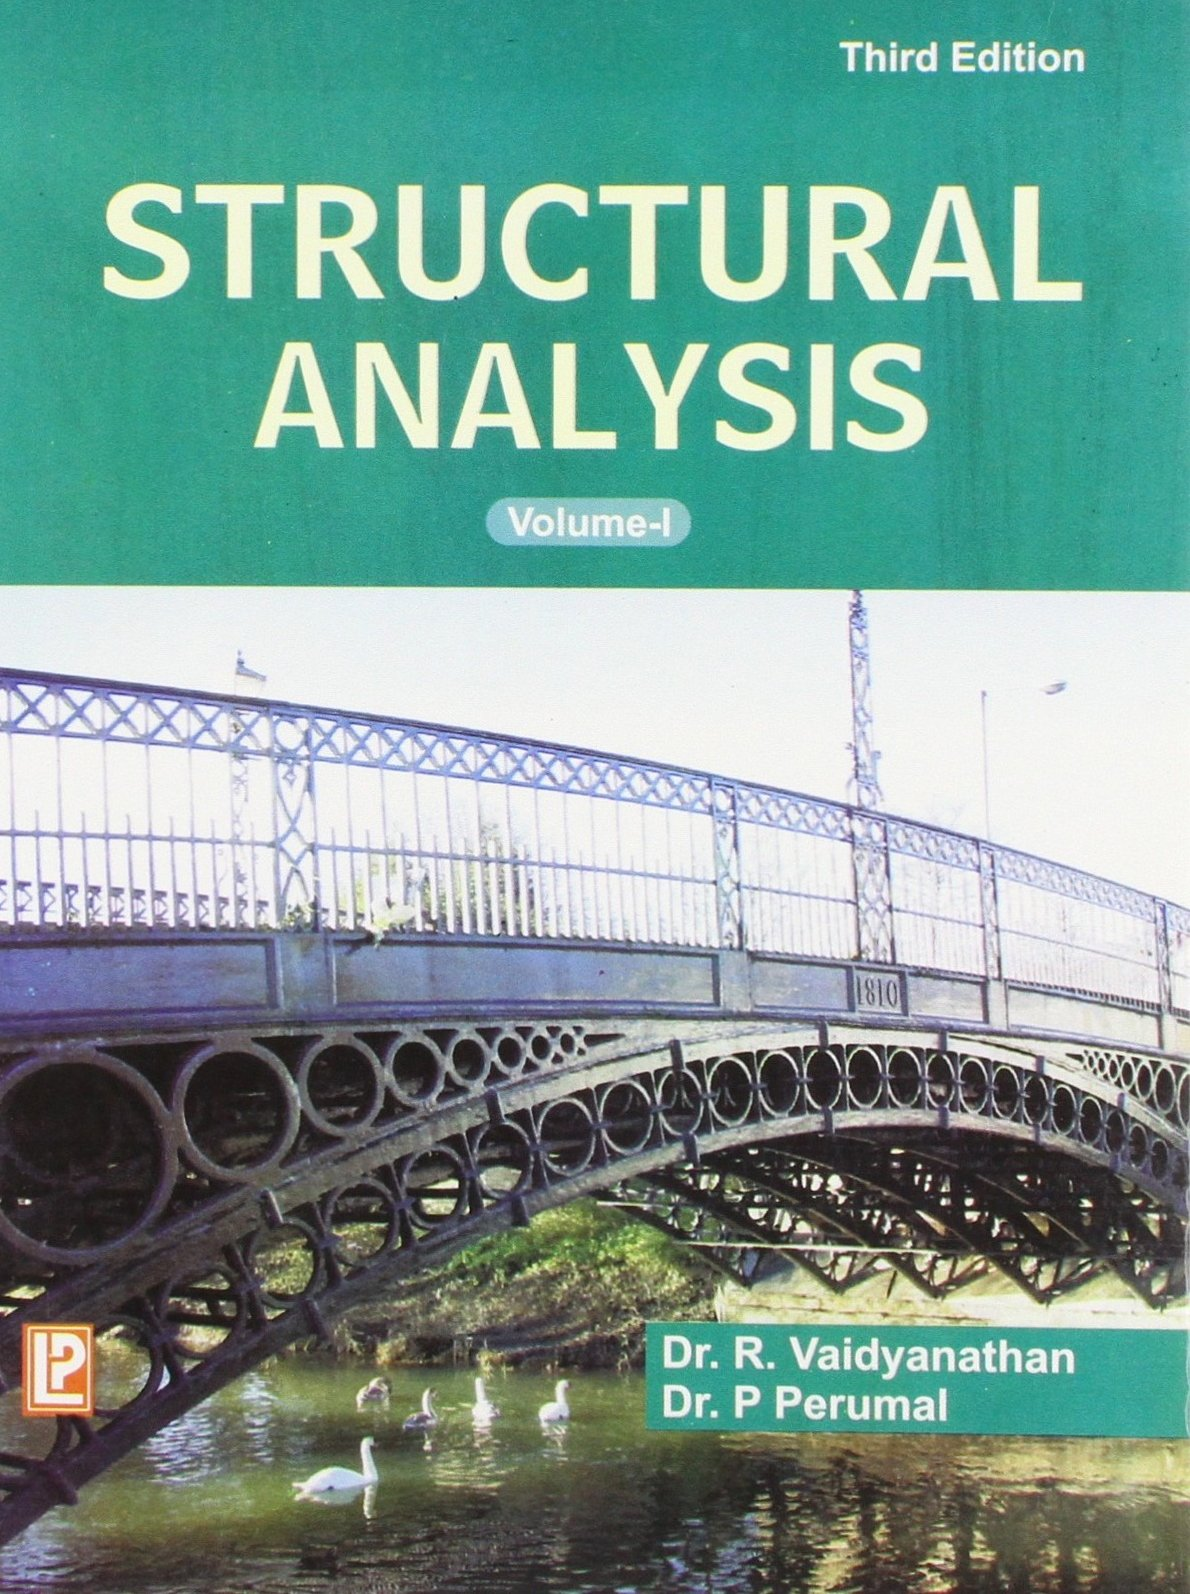 Download structural analysis 1 by ss bhavikatti free pdf | cg.